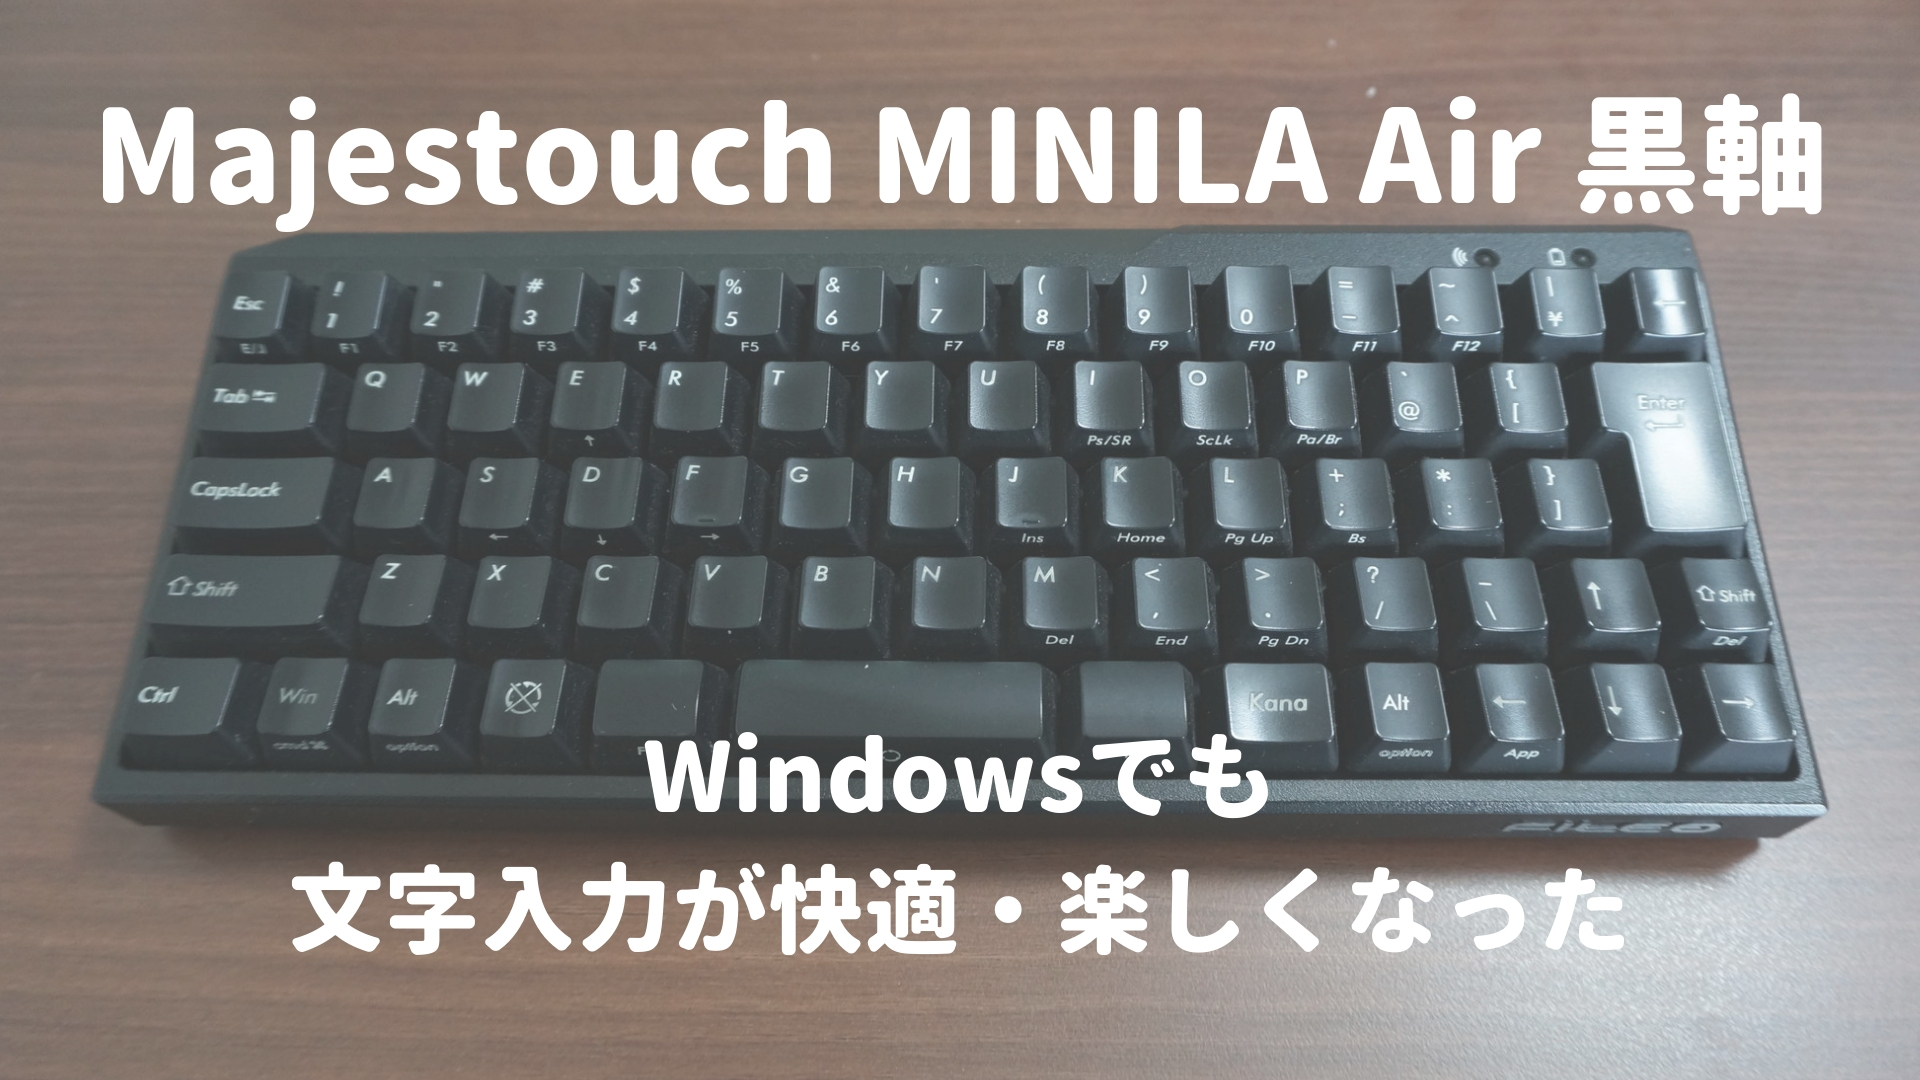 Majestouch MINILA Air JP68キー 黒軸